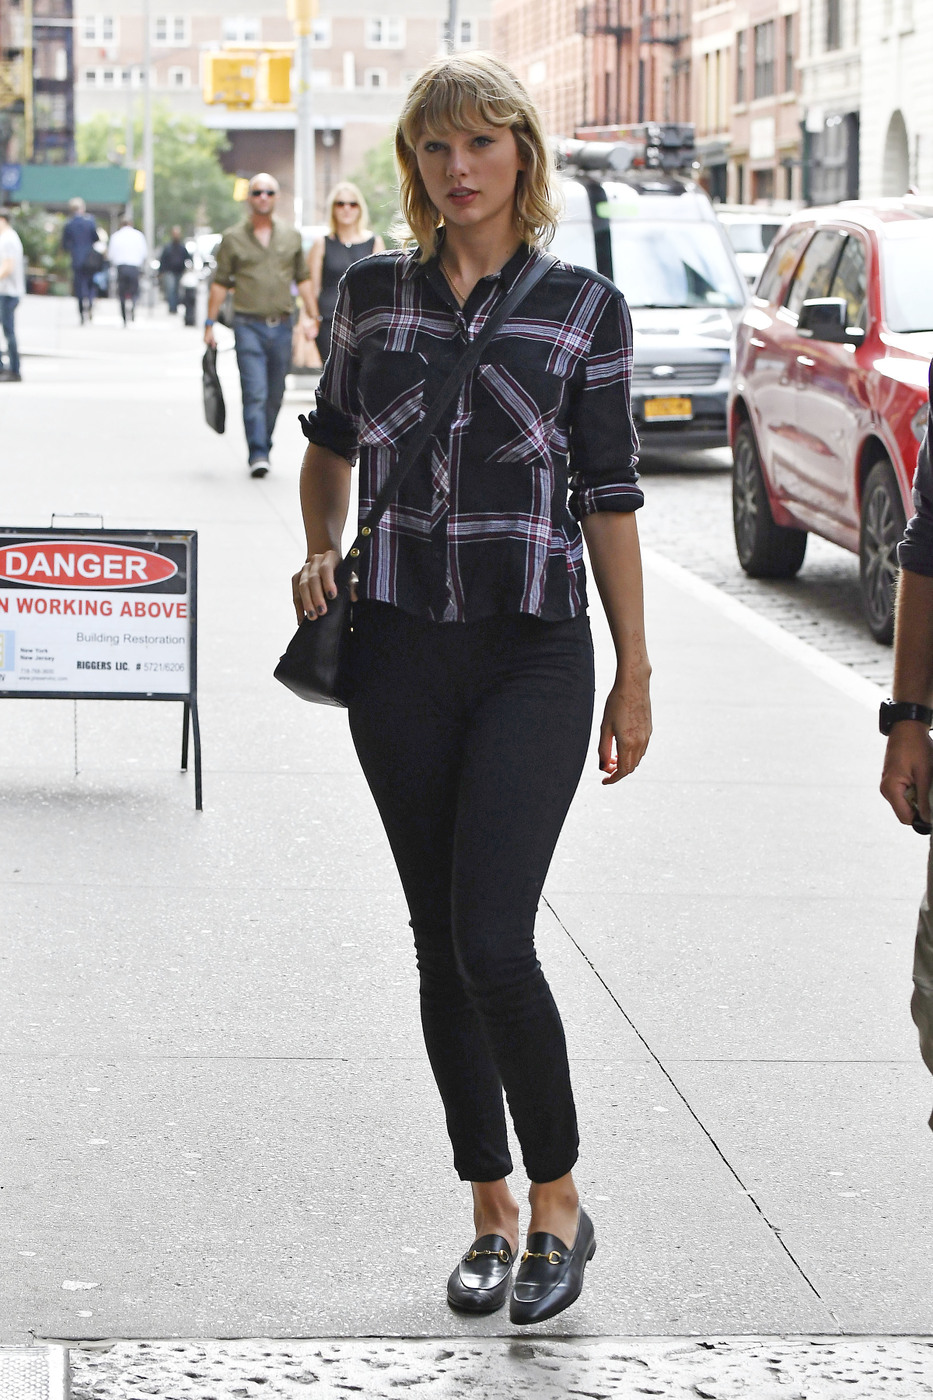 Taylor Swift Casual Fashion Style Plaid Shirt And Loafers